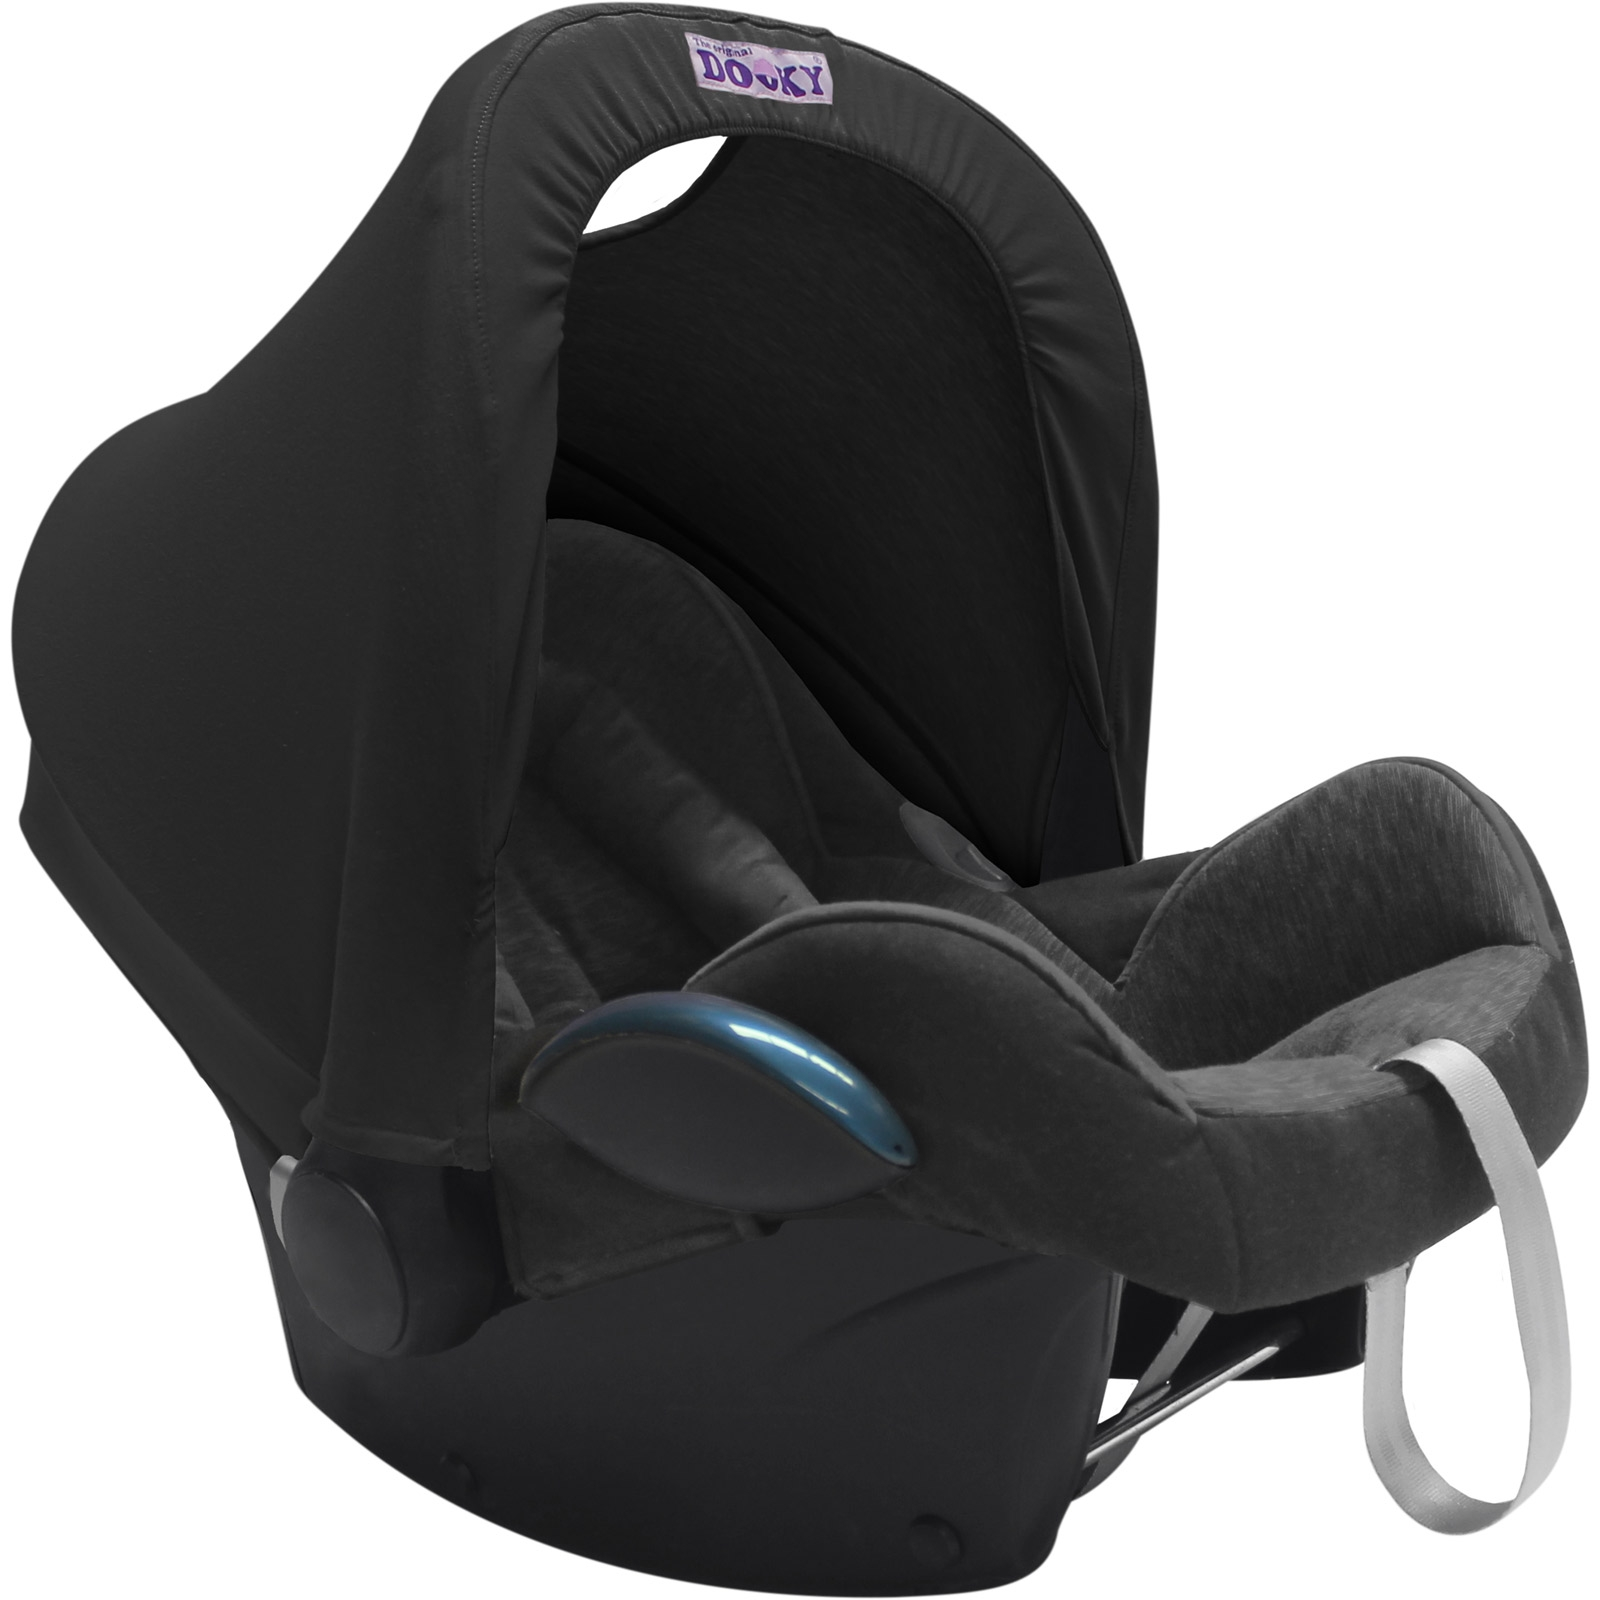 Housse maxi cosi bebe confort for Housse maxi cosi cabriofix